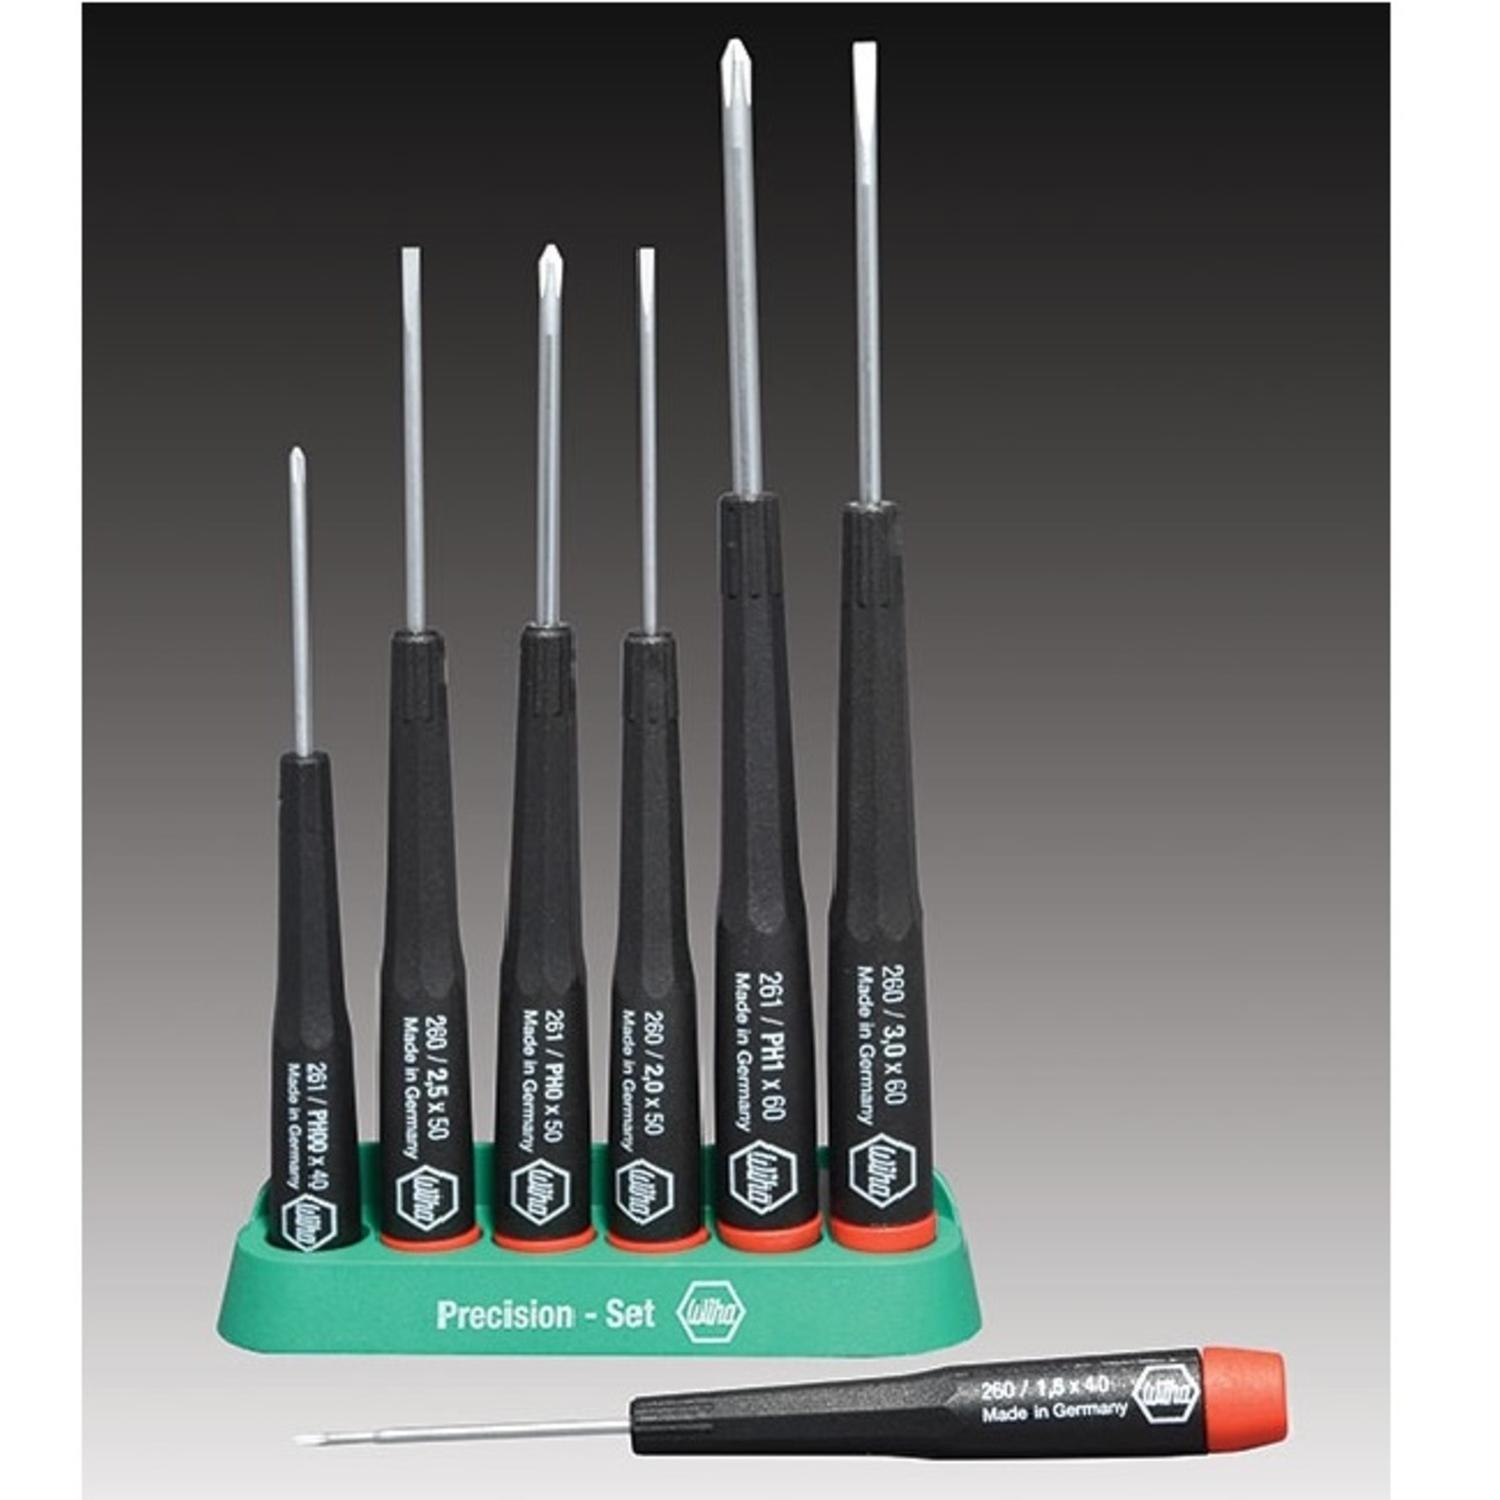 7-piece Precision Screwdriver Set with Stand